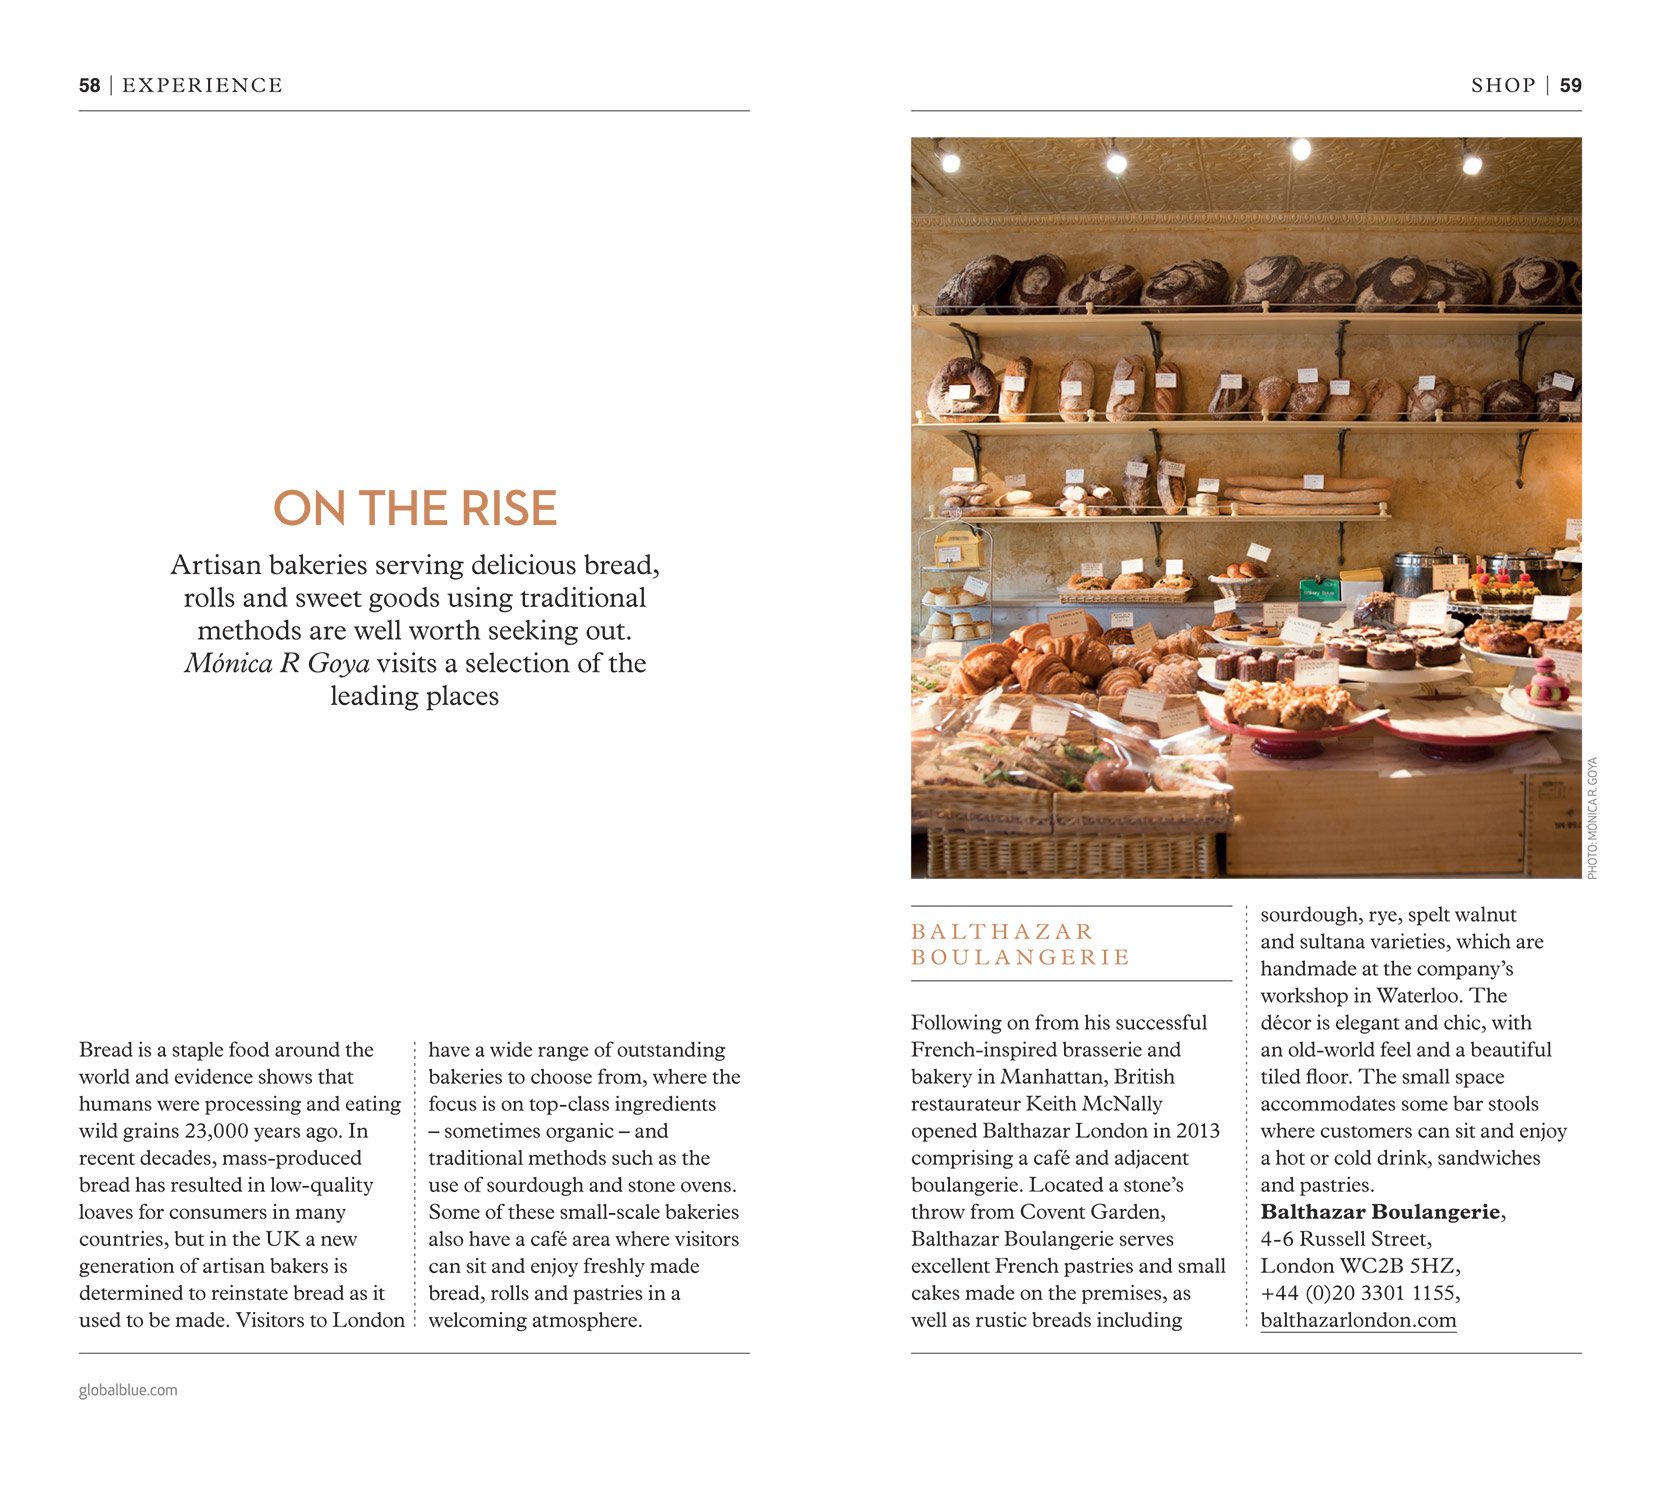 Best Bakeries in London - SHOP magazine London Style edition AW16 - Words & Photography